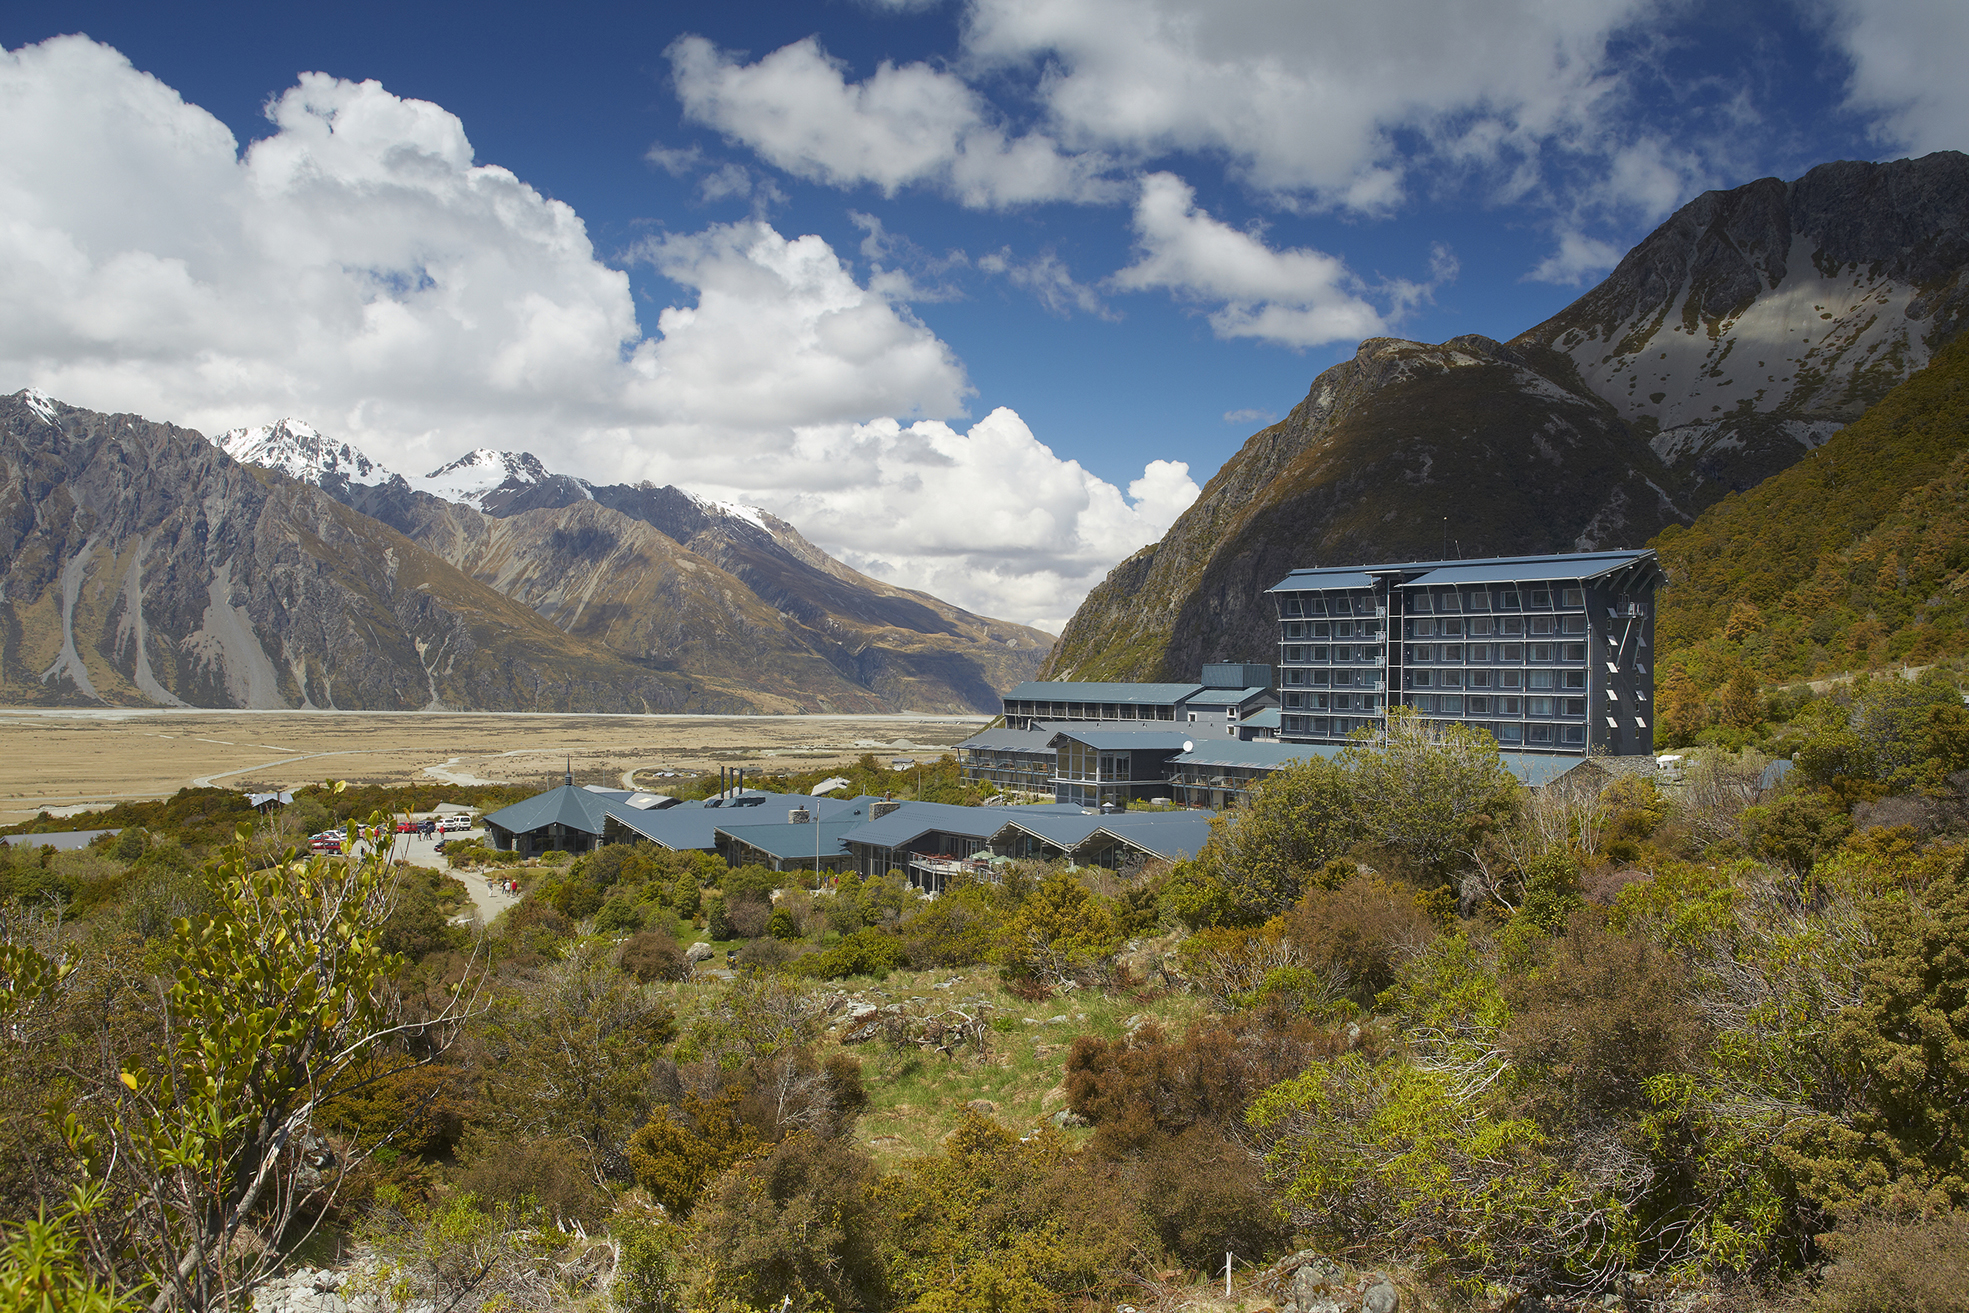 The Hermitage, situated amid the alpine splendor of Aoraki Mount Cook National Park.